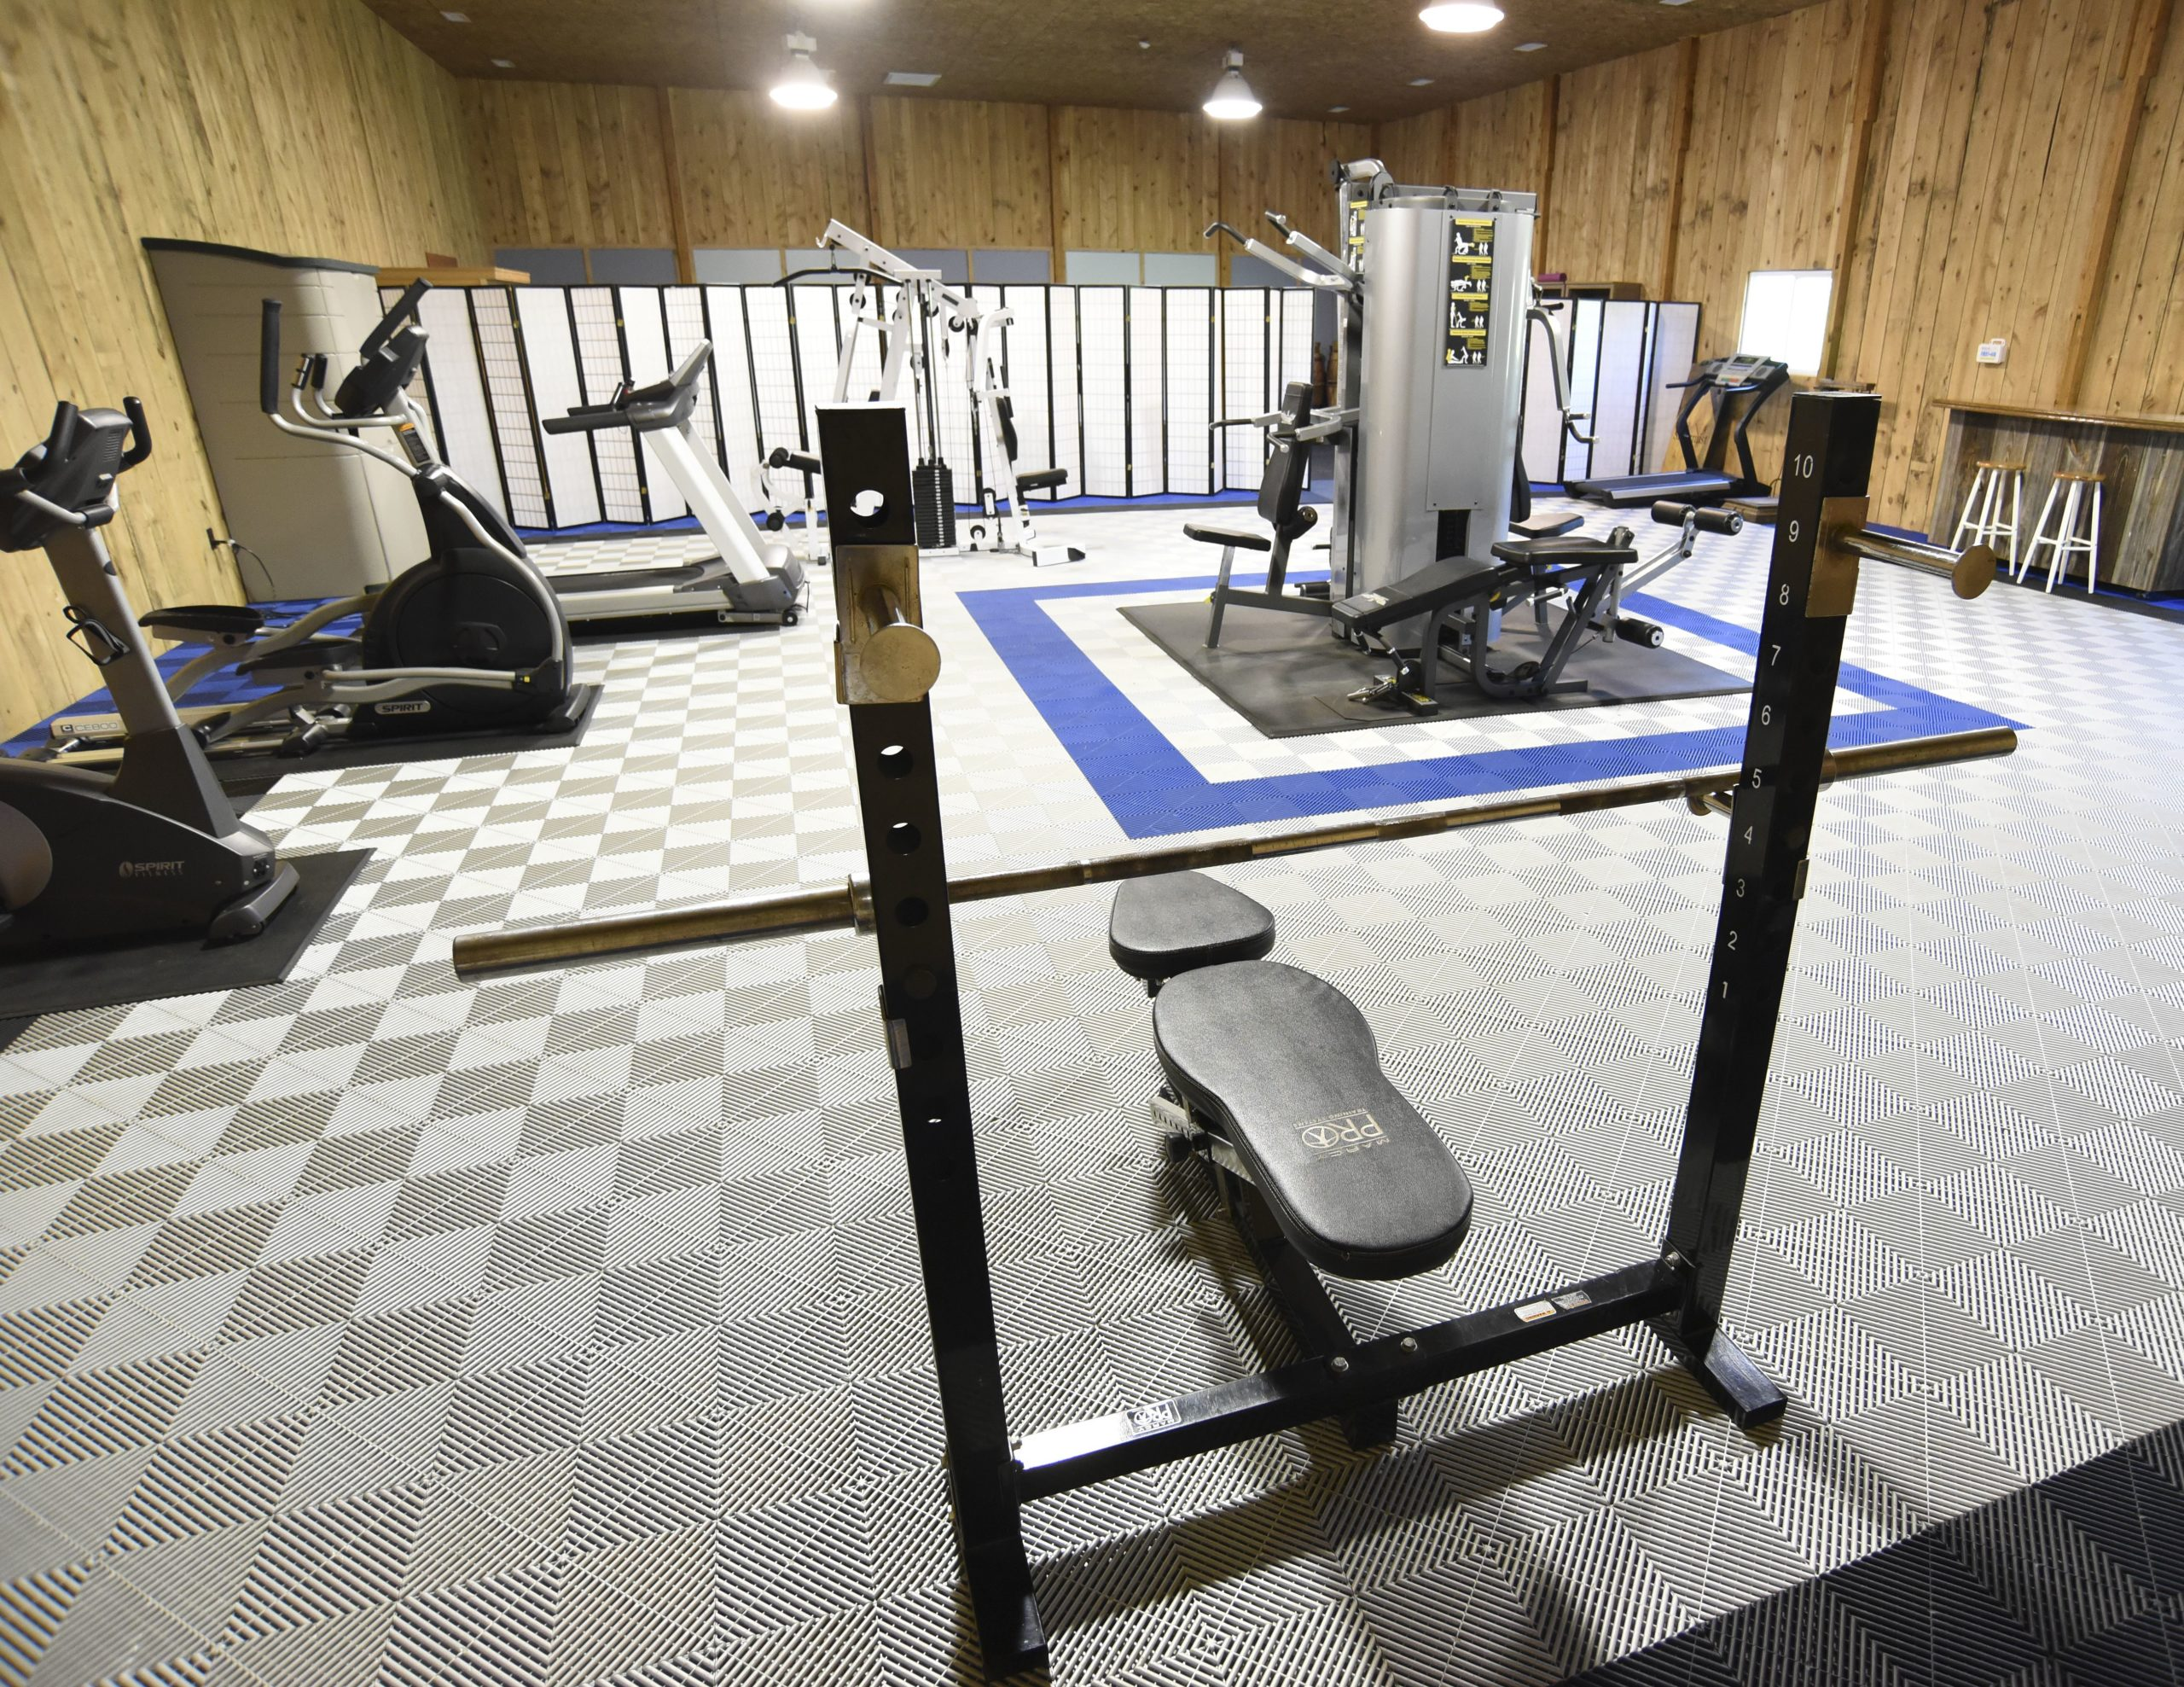 Workout room at Silvermist